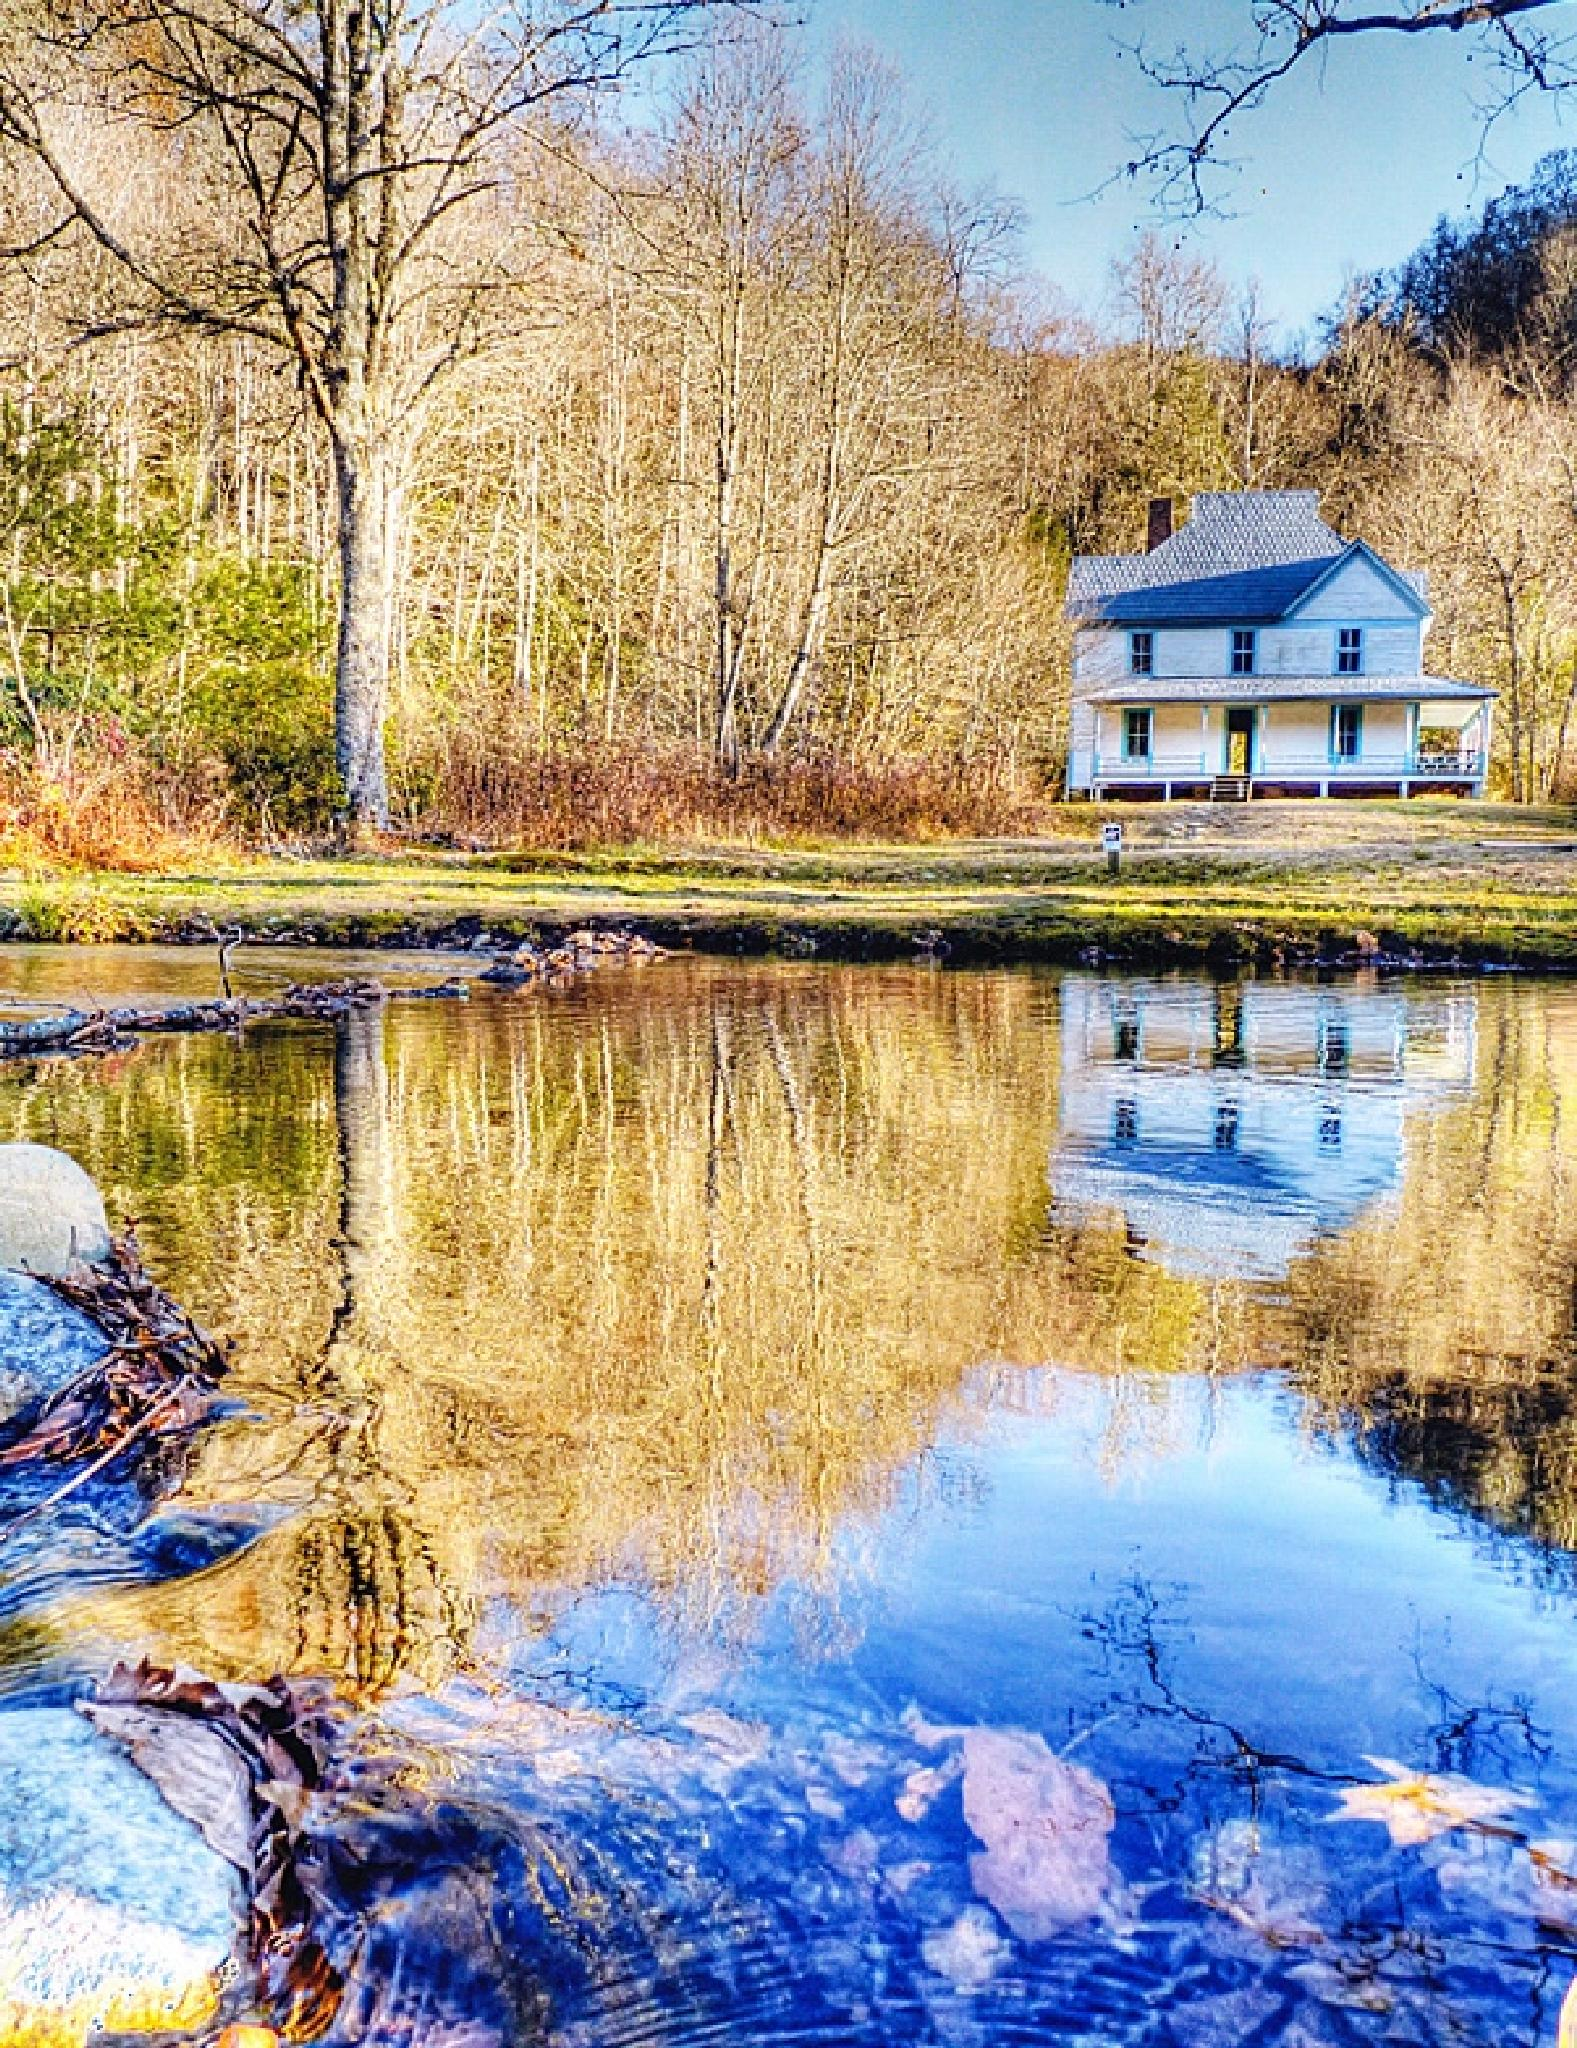 The Old Home Place by john.hamrick.144